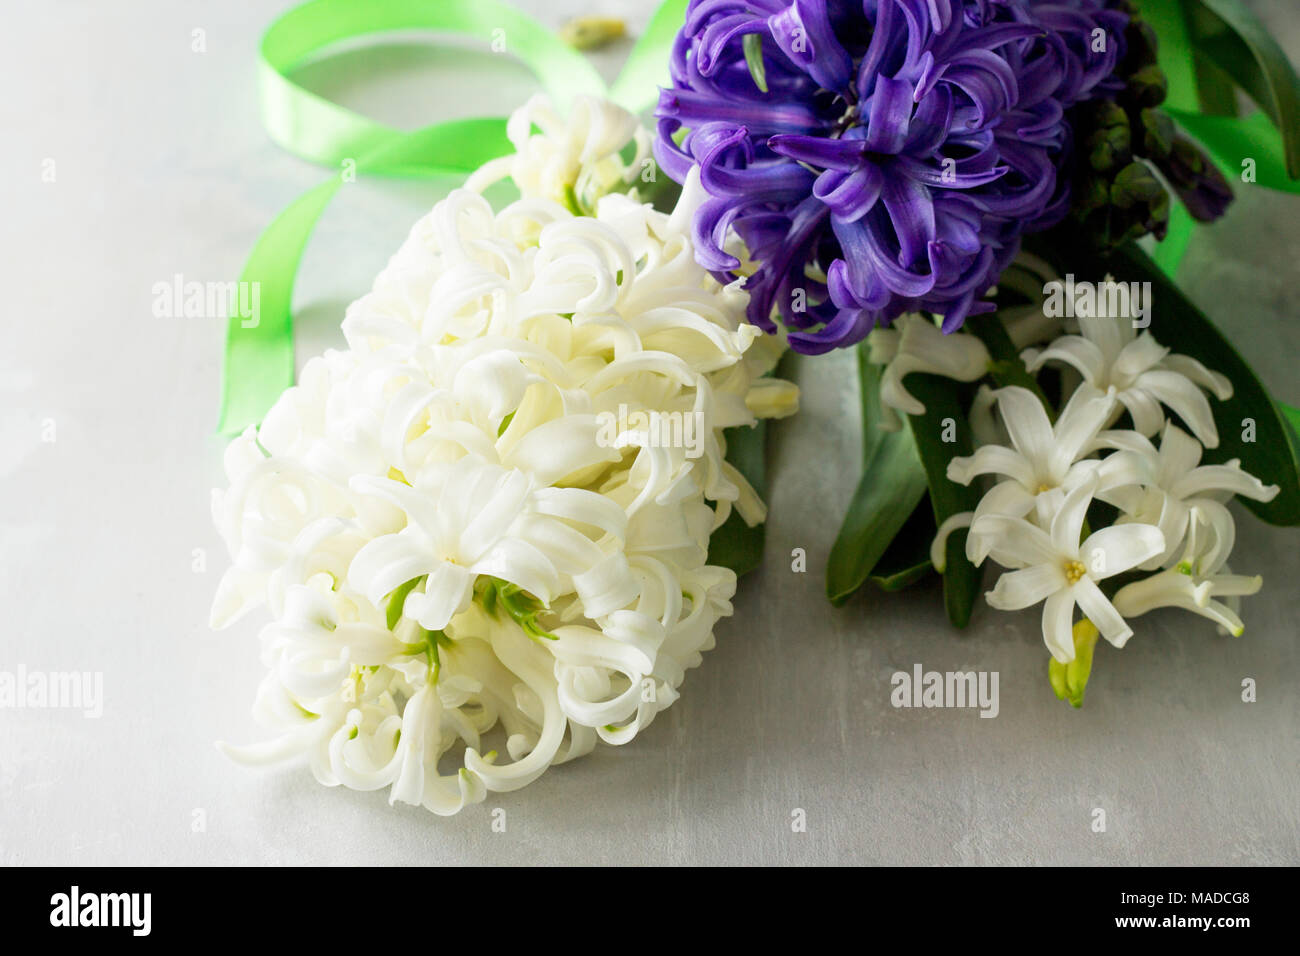 Bouquet of hyacinth flower on stone background or slate spring bouquet of hyacinth flower on stone background or slate spring flowers background top view flat lay background izmirmasajfo